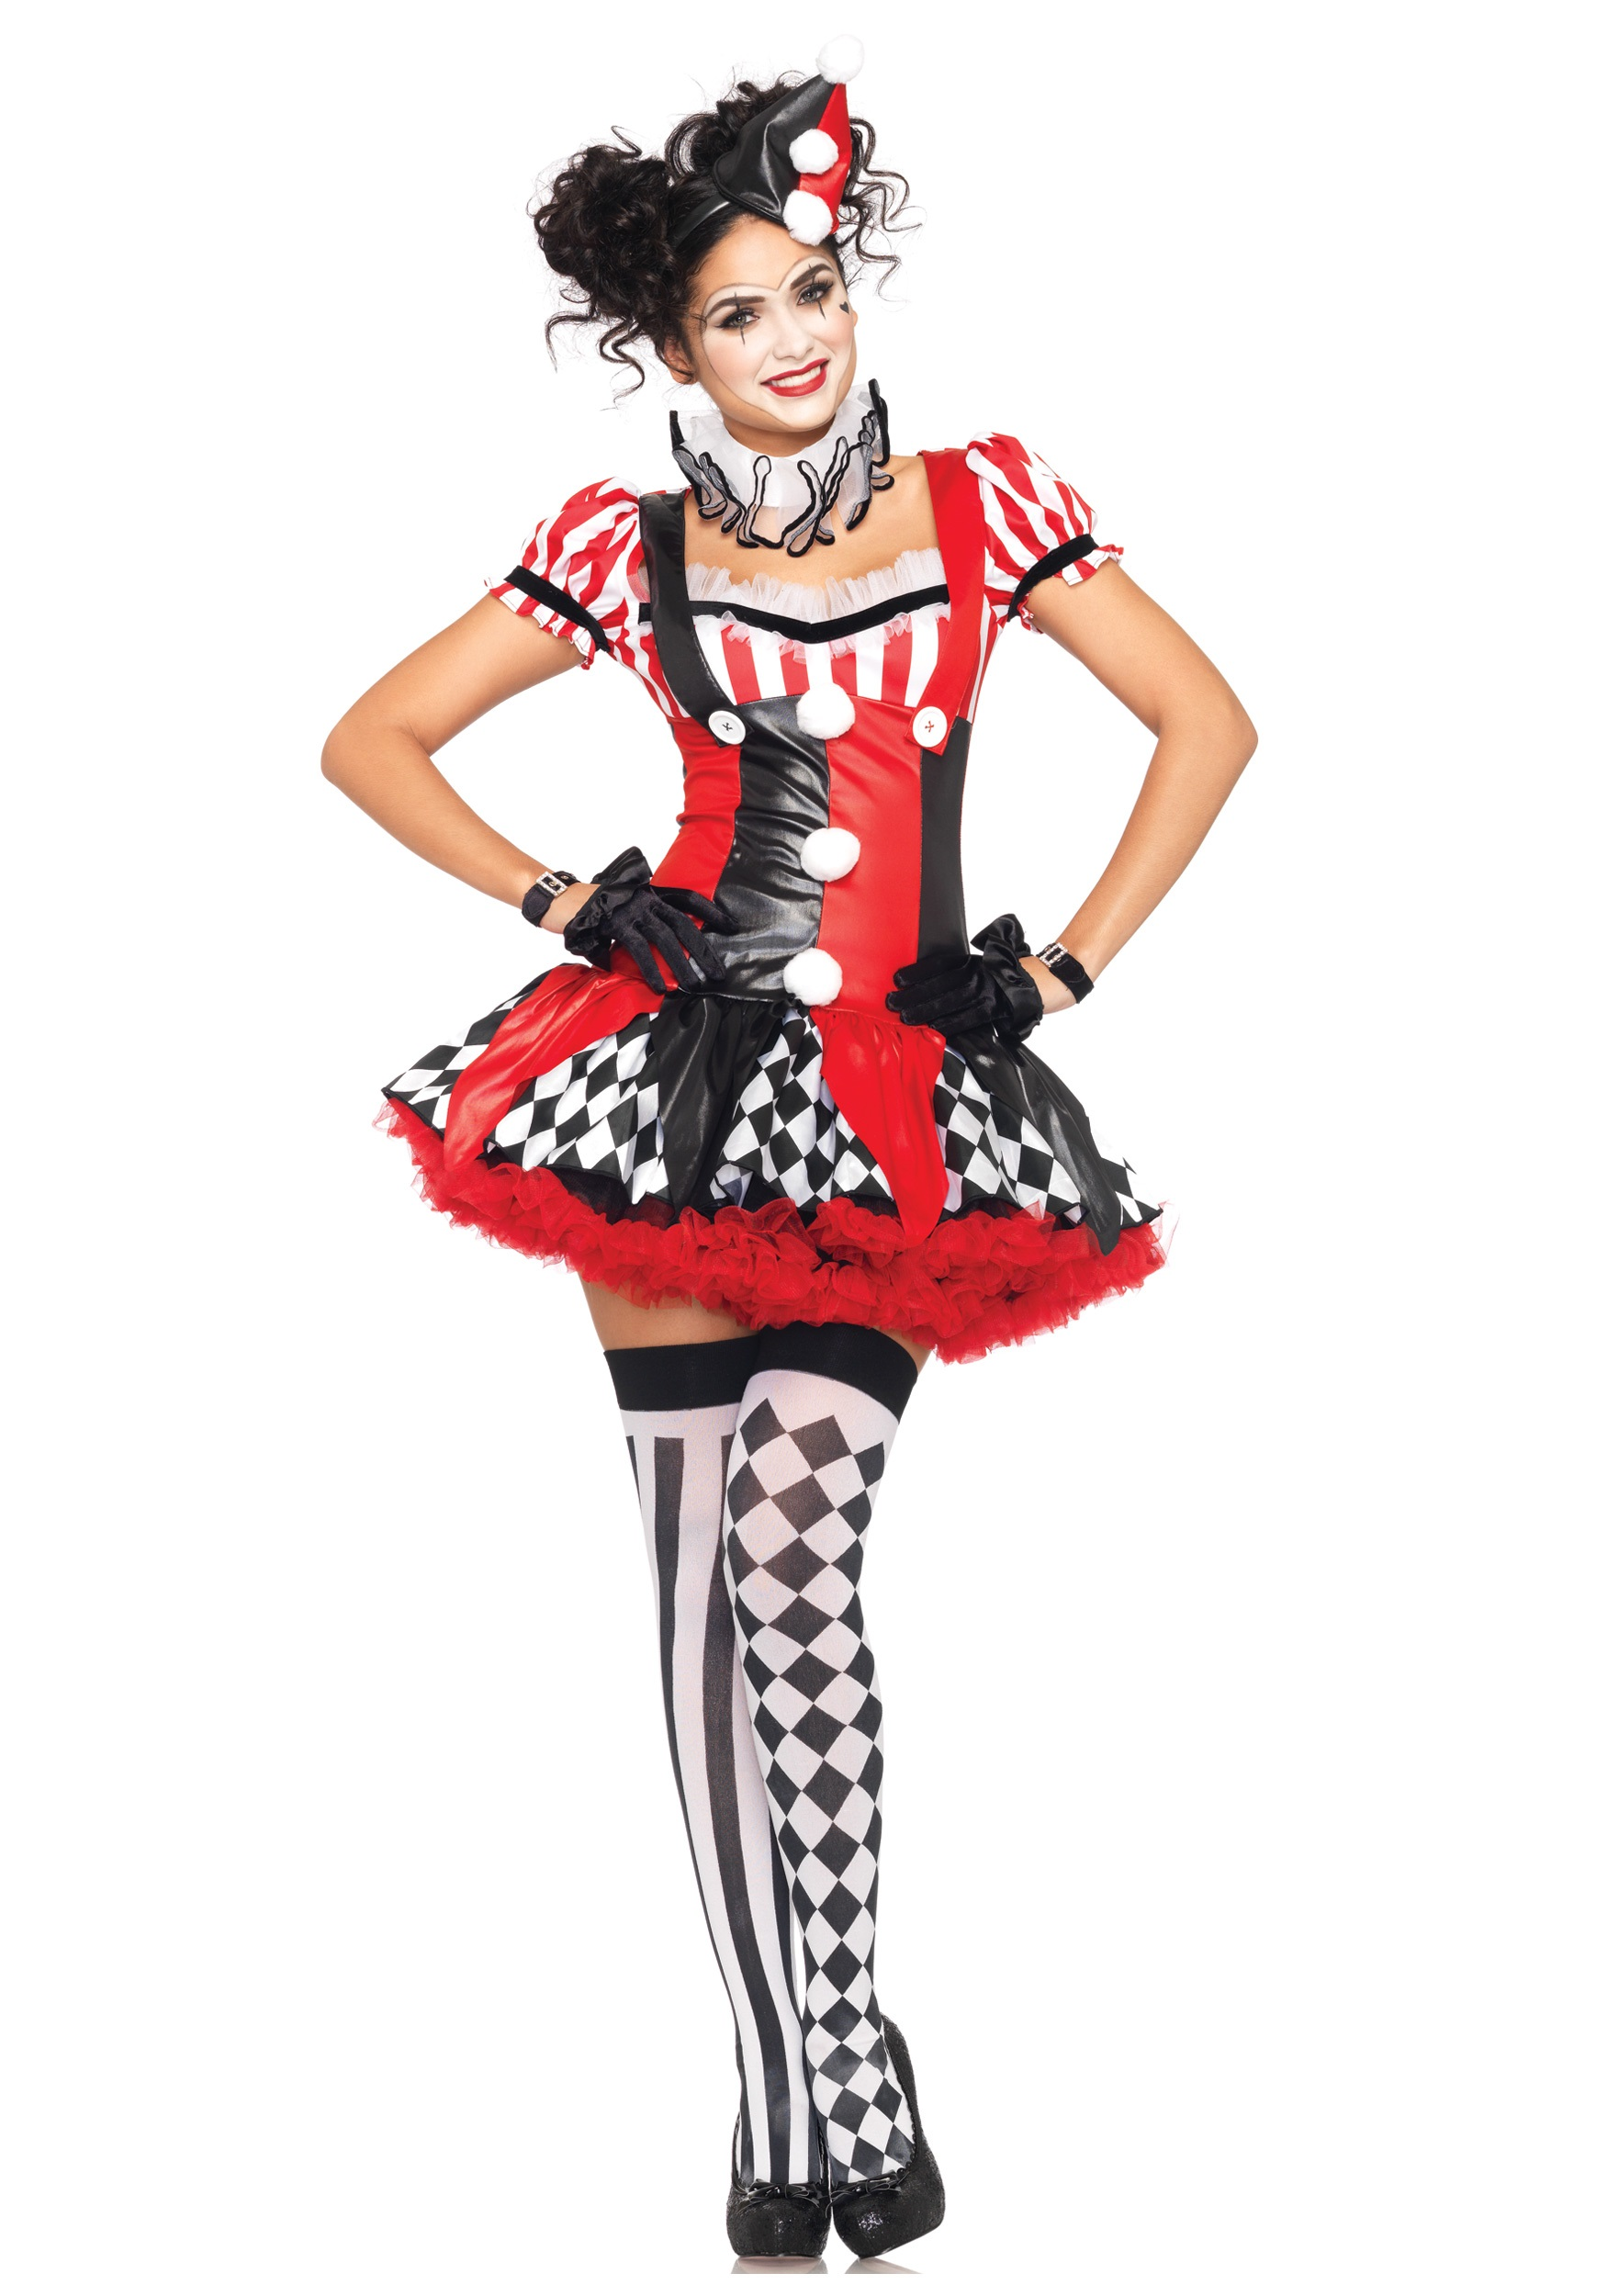 Naughty Harlequin Clown Costume  sc 1 st  Halloween Costumes & Clown Costumes - Adult Kids Clown Costume for Halloween